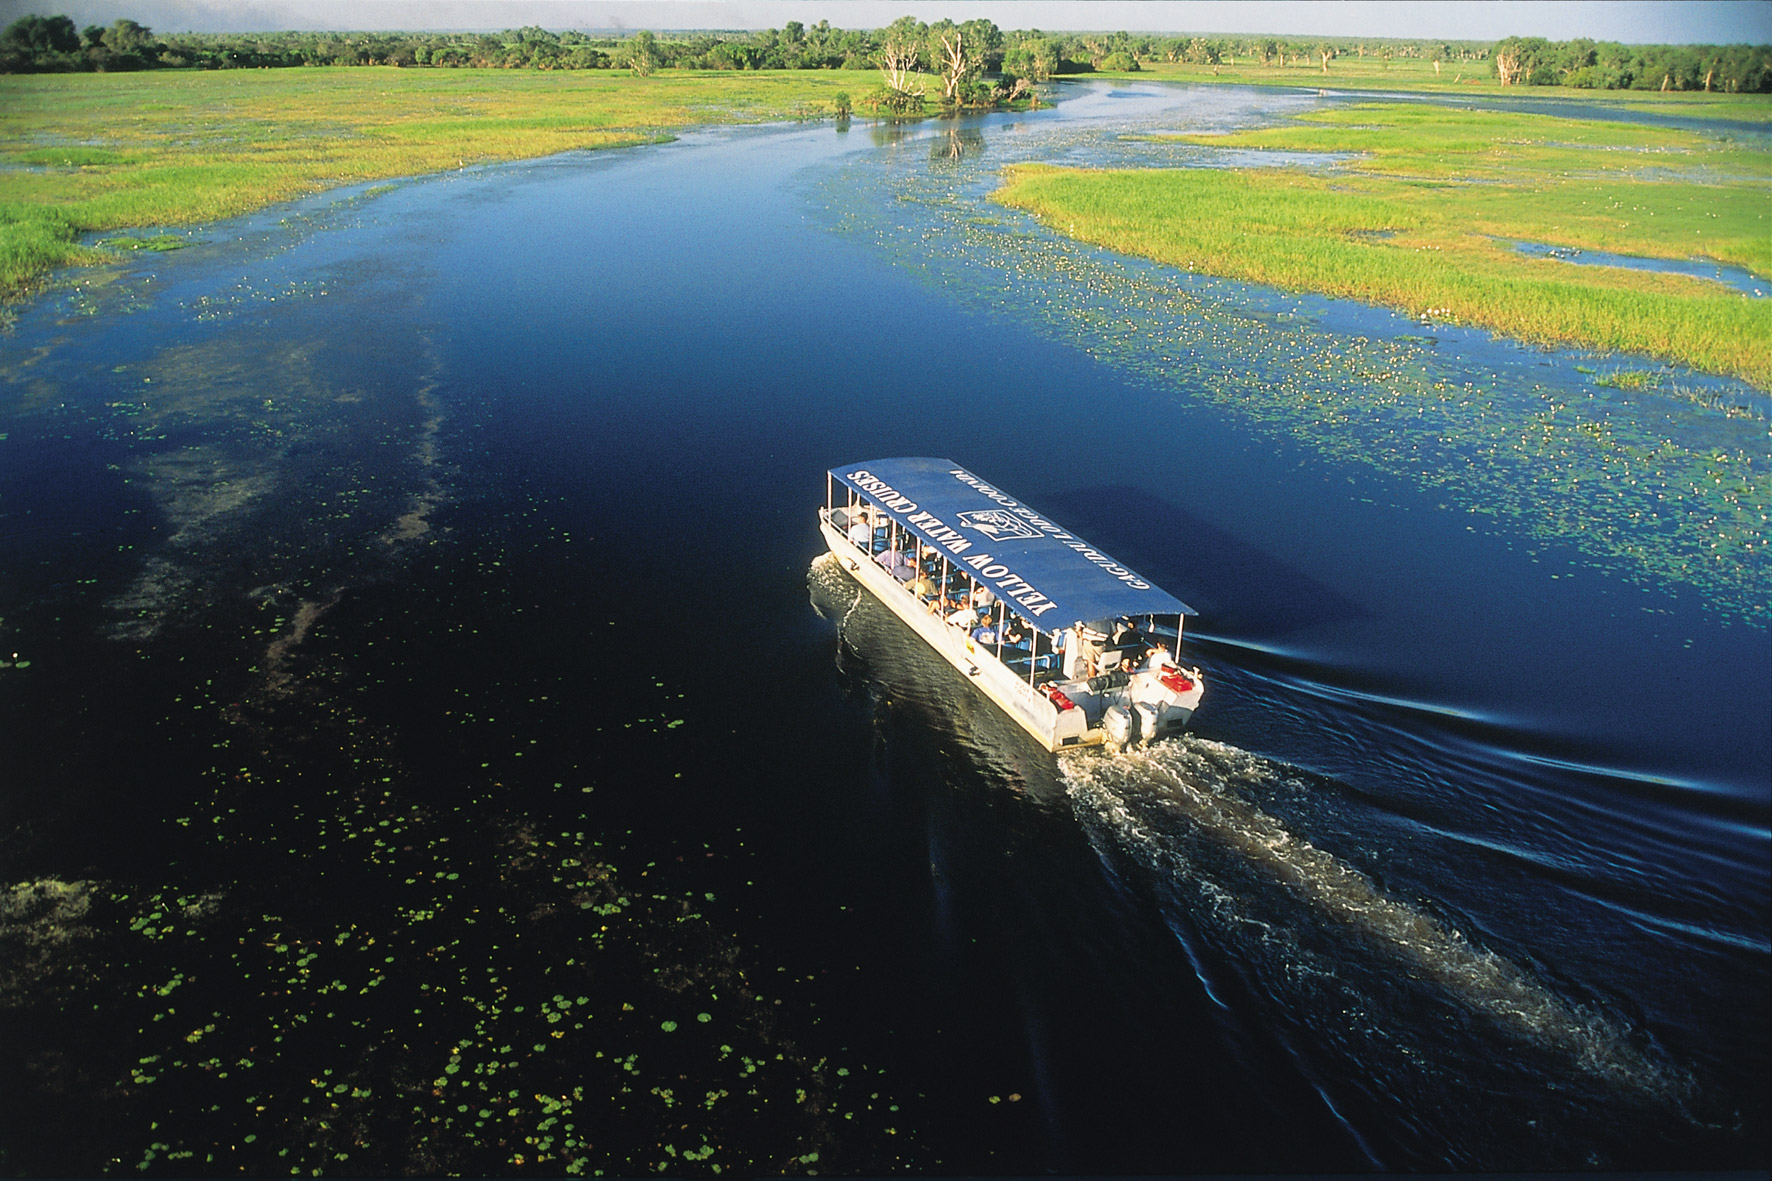 Kakadu & East Alligator River | Yellow Water Cruise, Kakadu National Park, Northern Territory